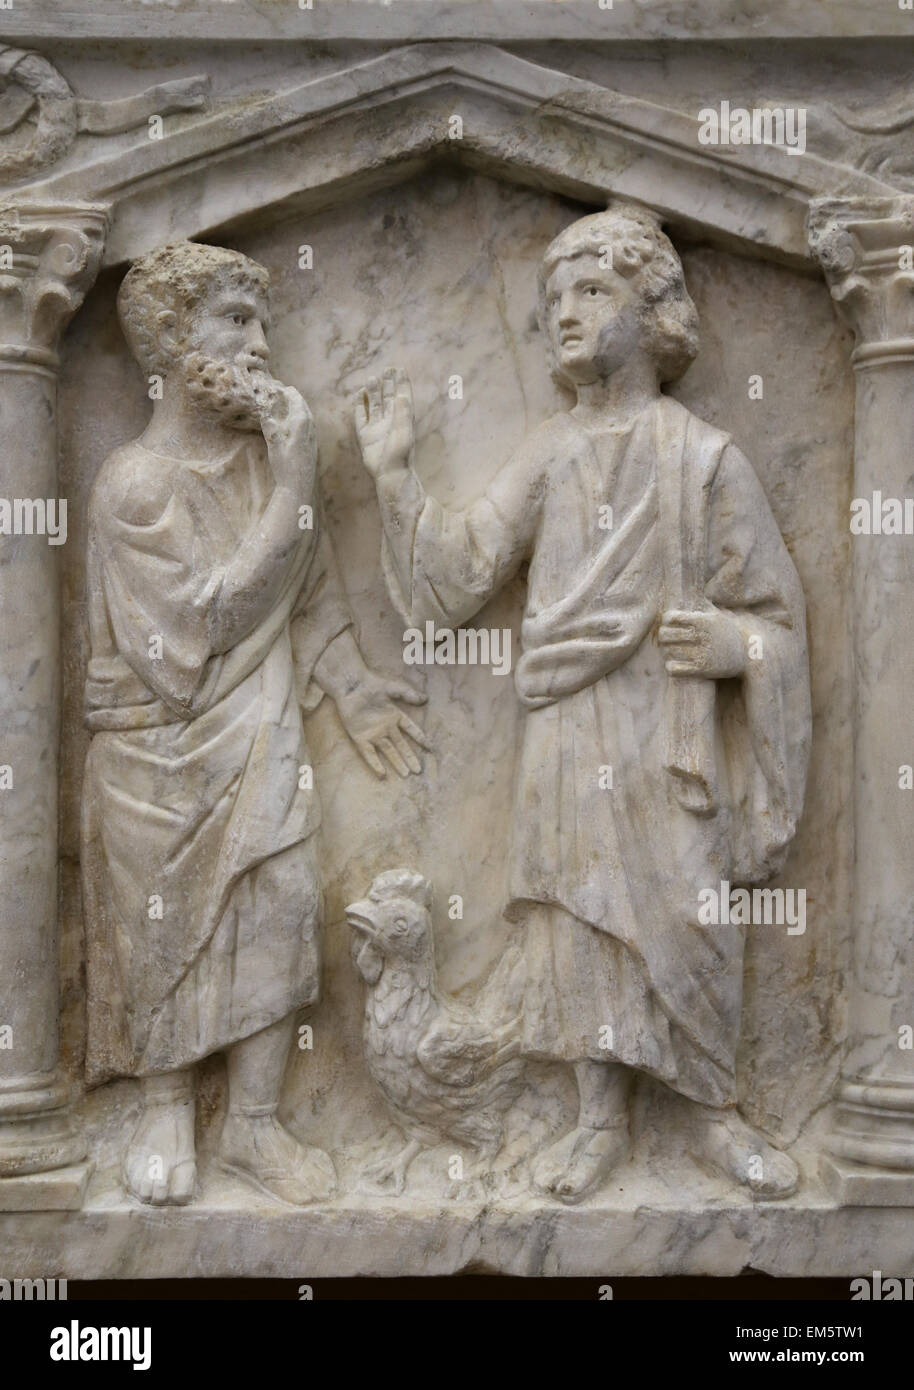 Cristian-Roman. Front of columnar sarcophagus with biblical scenes. 350-375 AD. Prediction of Peter's denial. - Stock Image